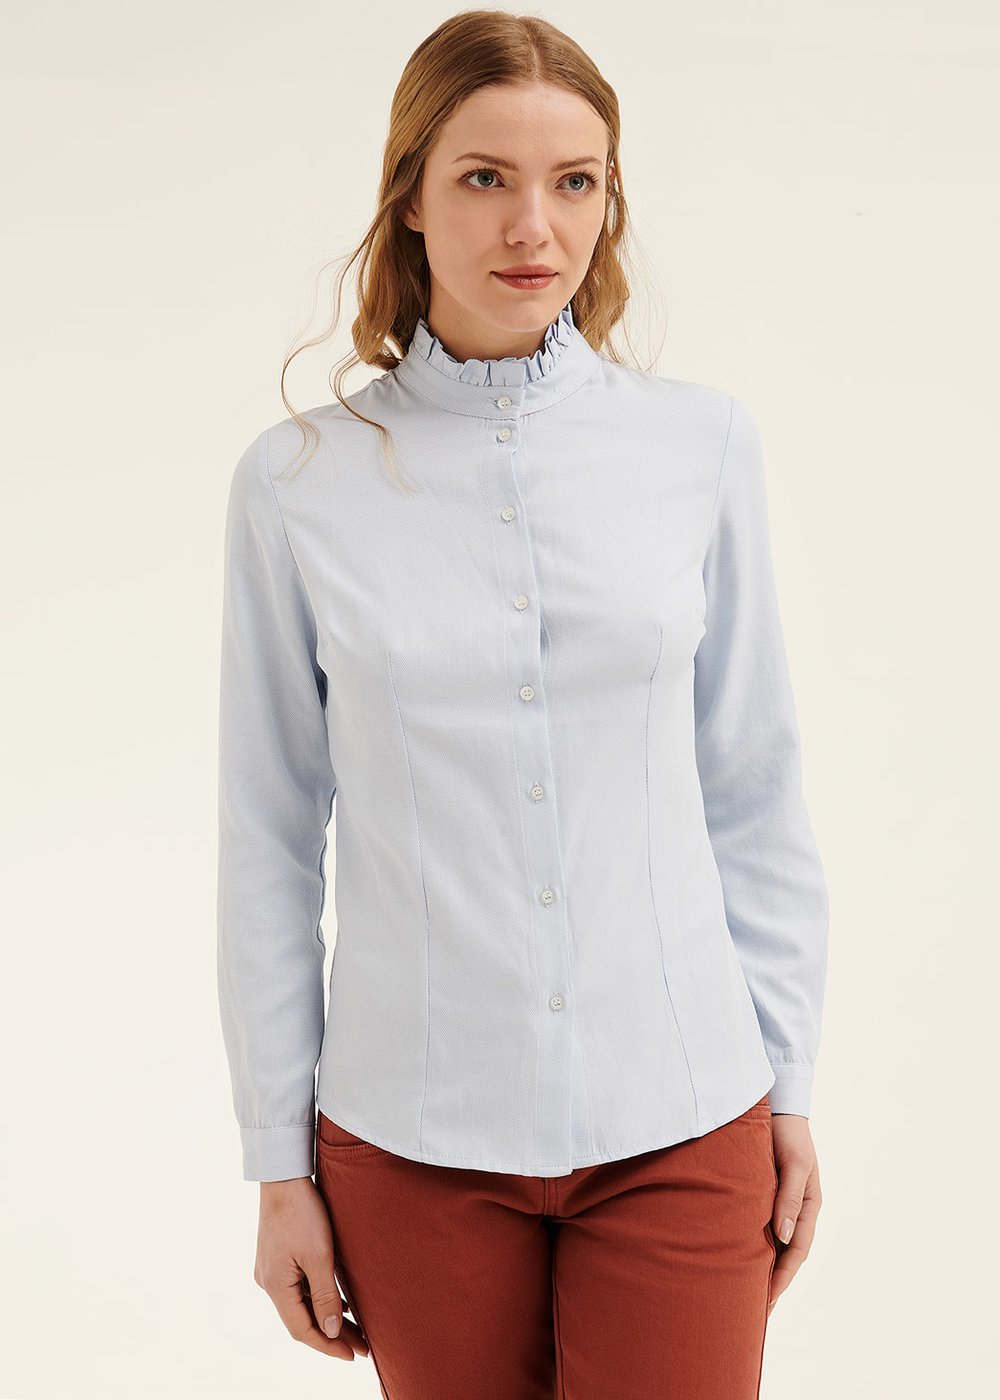 Cathryn shirt with ruffled collar - Blue sky - Woman